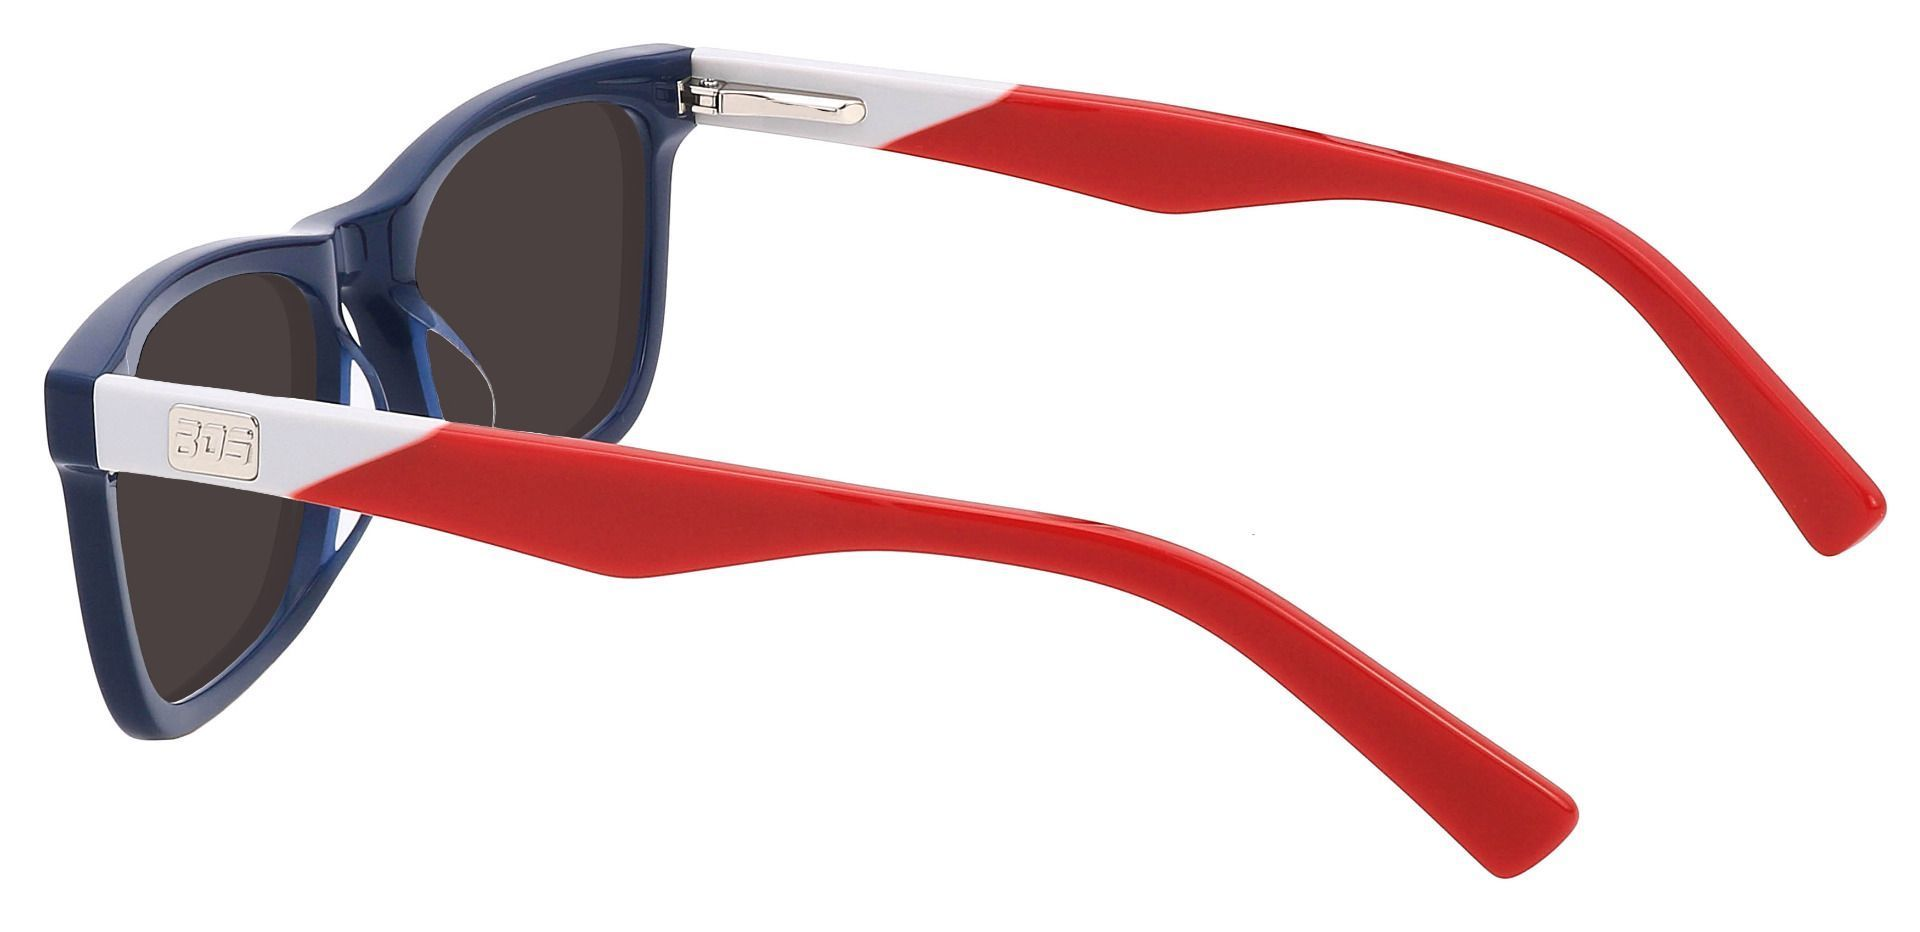 Harbor Rectangle Lined Bifocal Sunglasses - Blue Frame With Gray Lenses